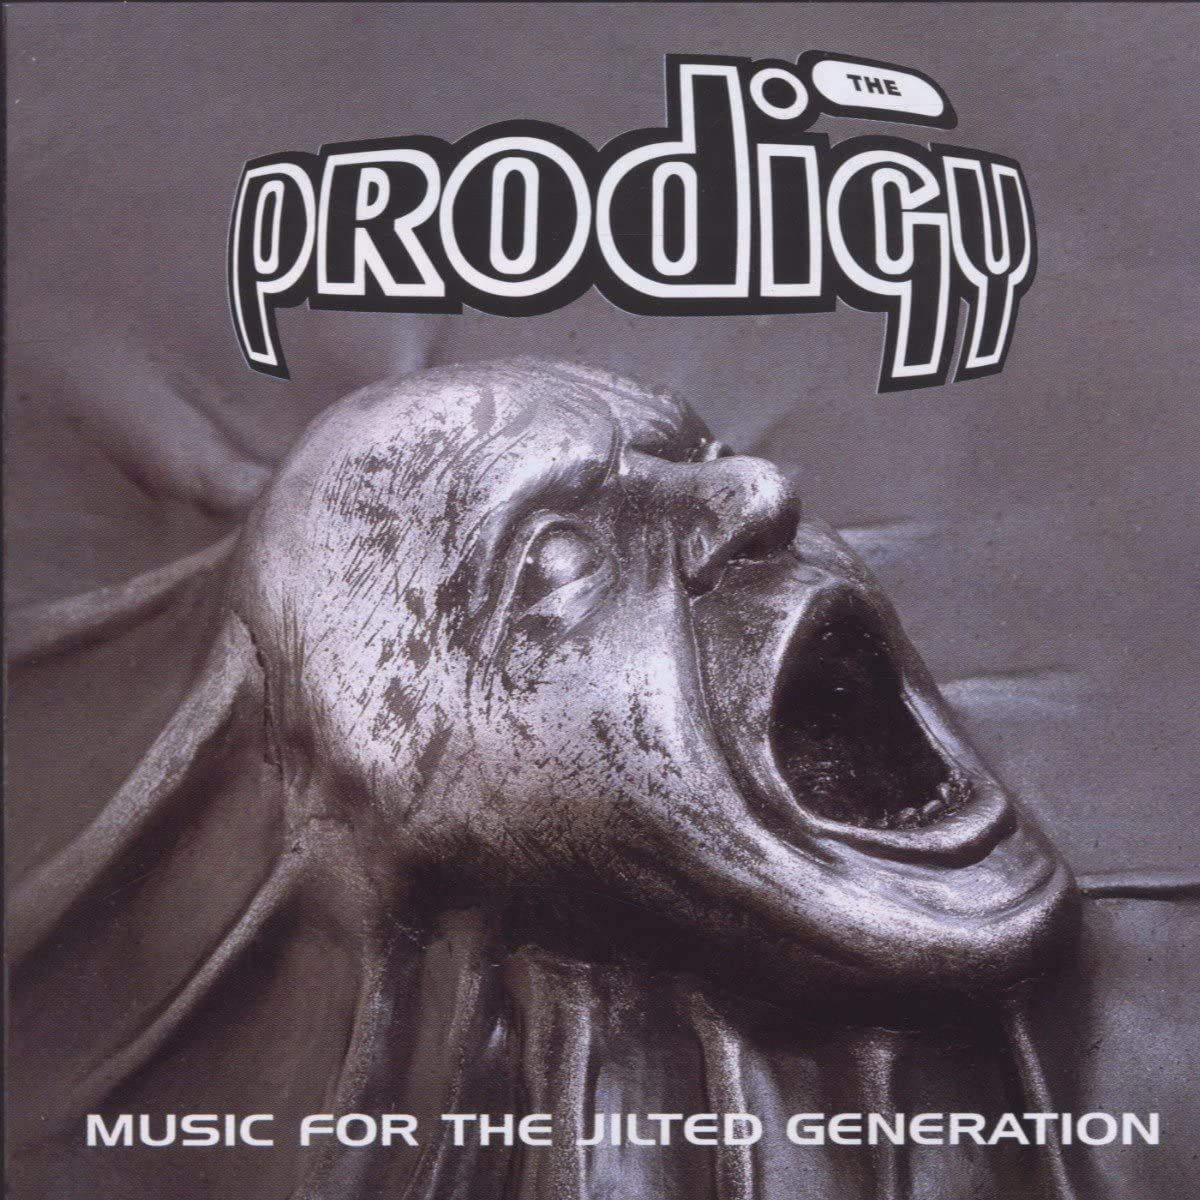 The Prodigy - Music For The Jilted Generation - 2LP